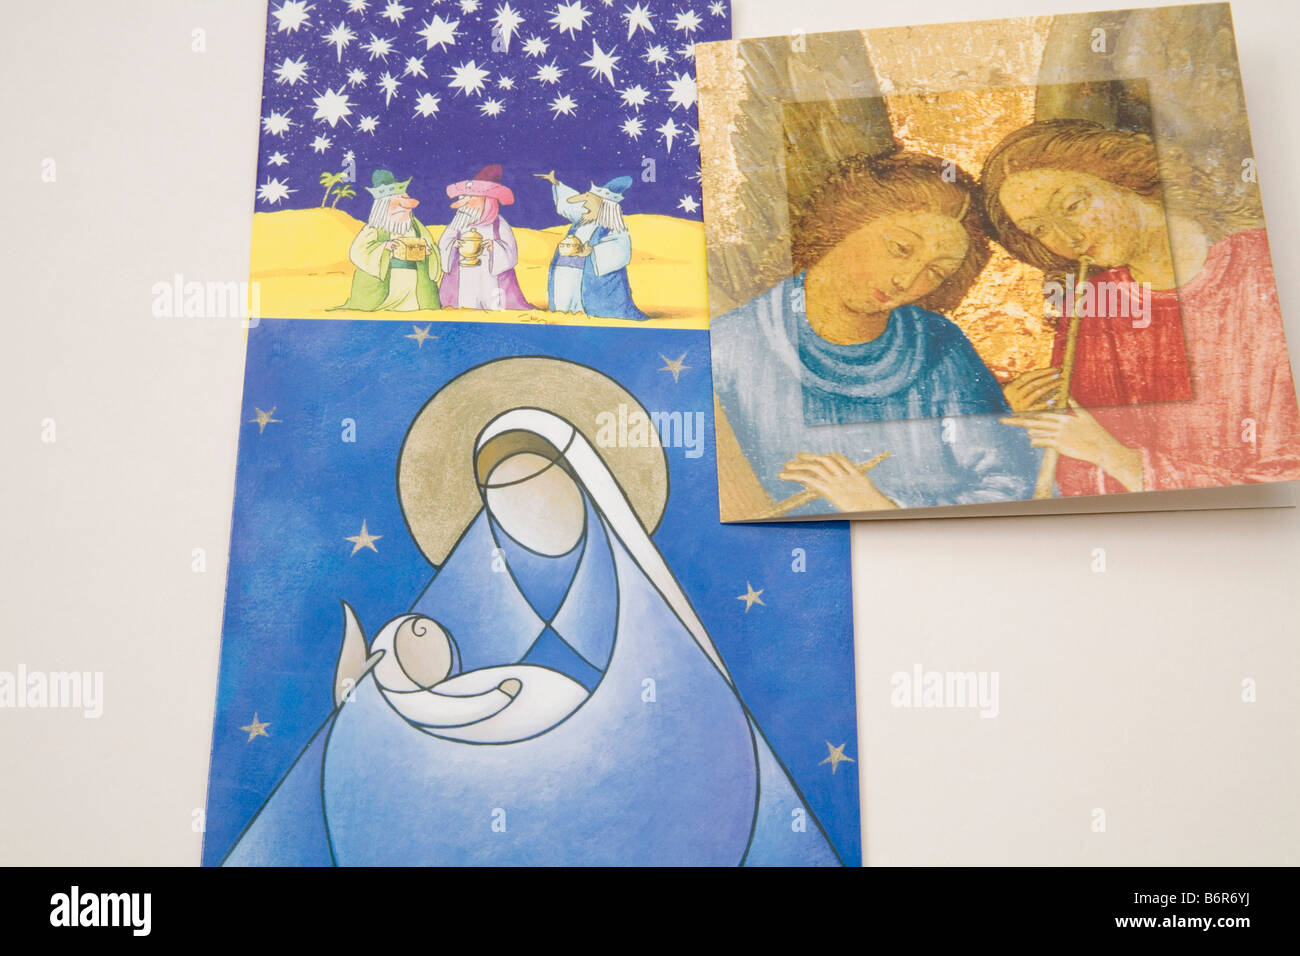 Religious Christmas Cards.Still Life Close Up Three Religious Christmas Cards Stock